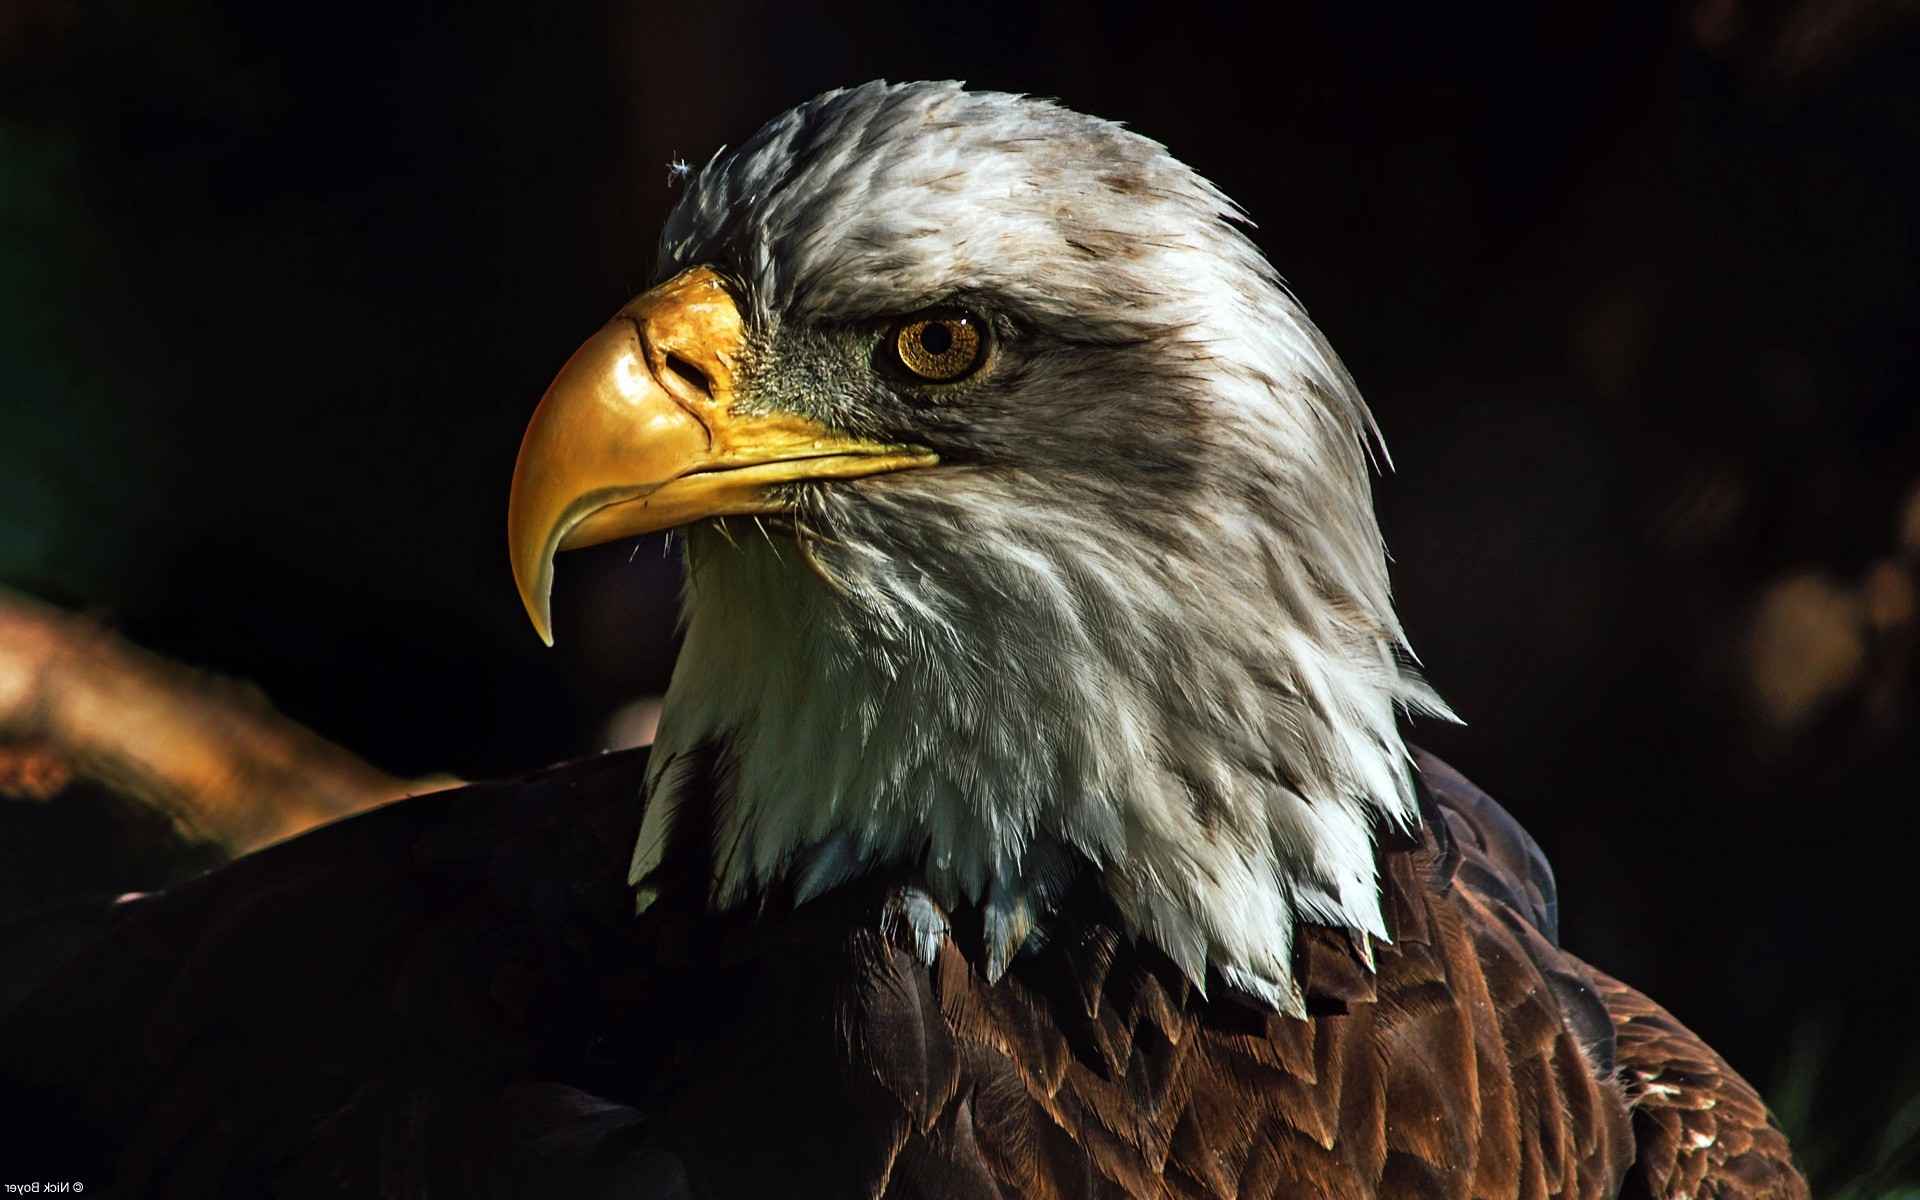 Eagle Bird Collection Of Wild Life Animals Wallpapers For: Eagle Wallpaper (81+ Images